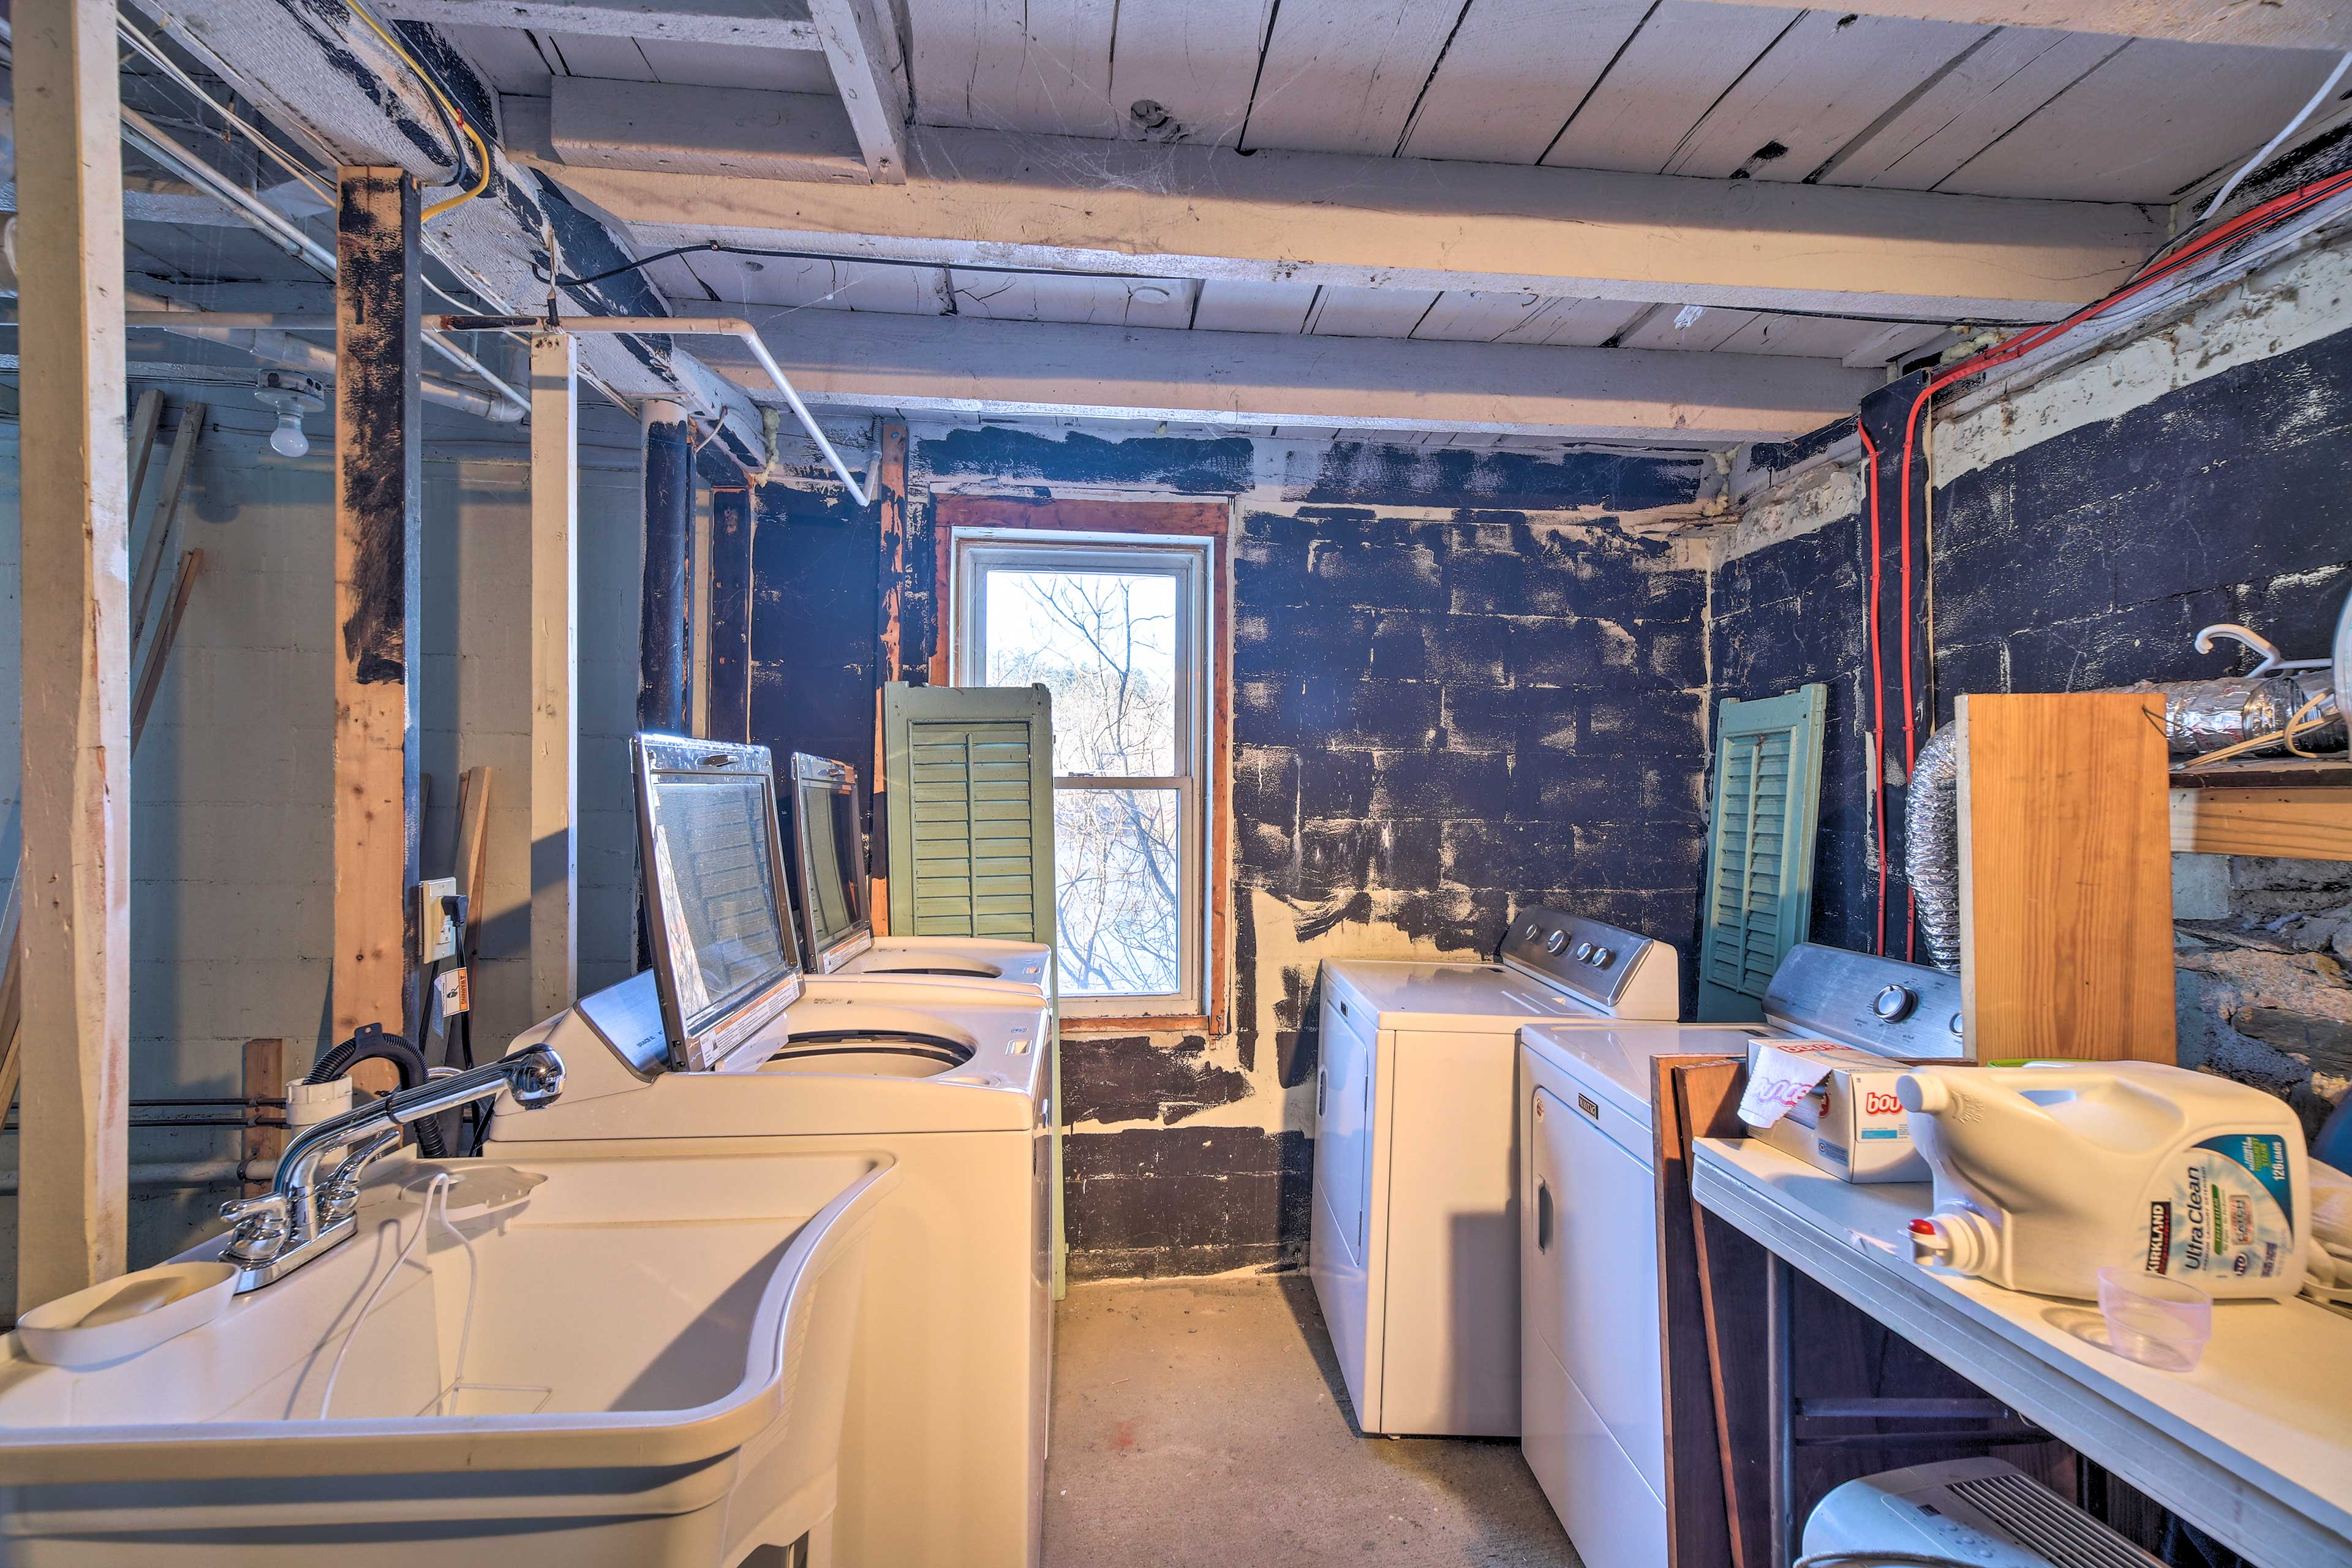 You will find a washer and dryer in the basement area.